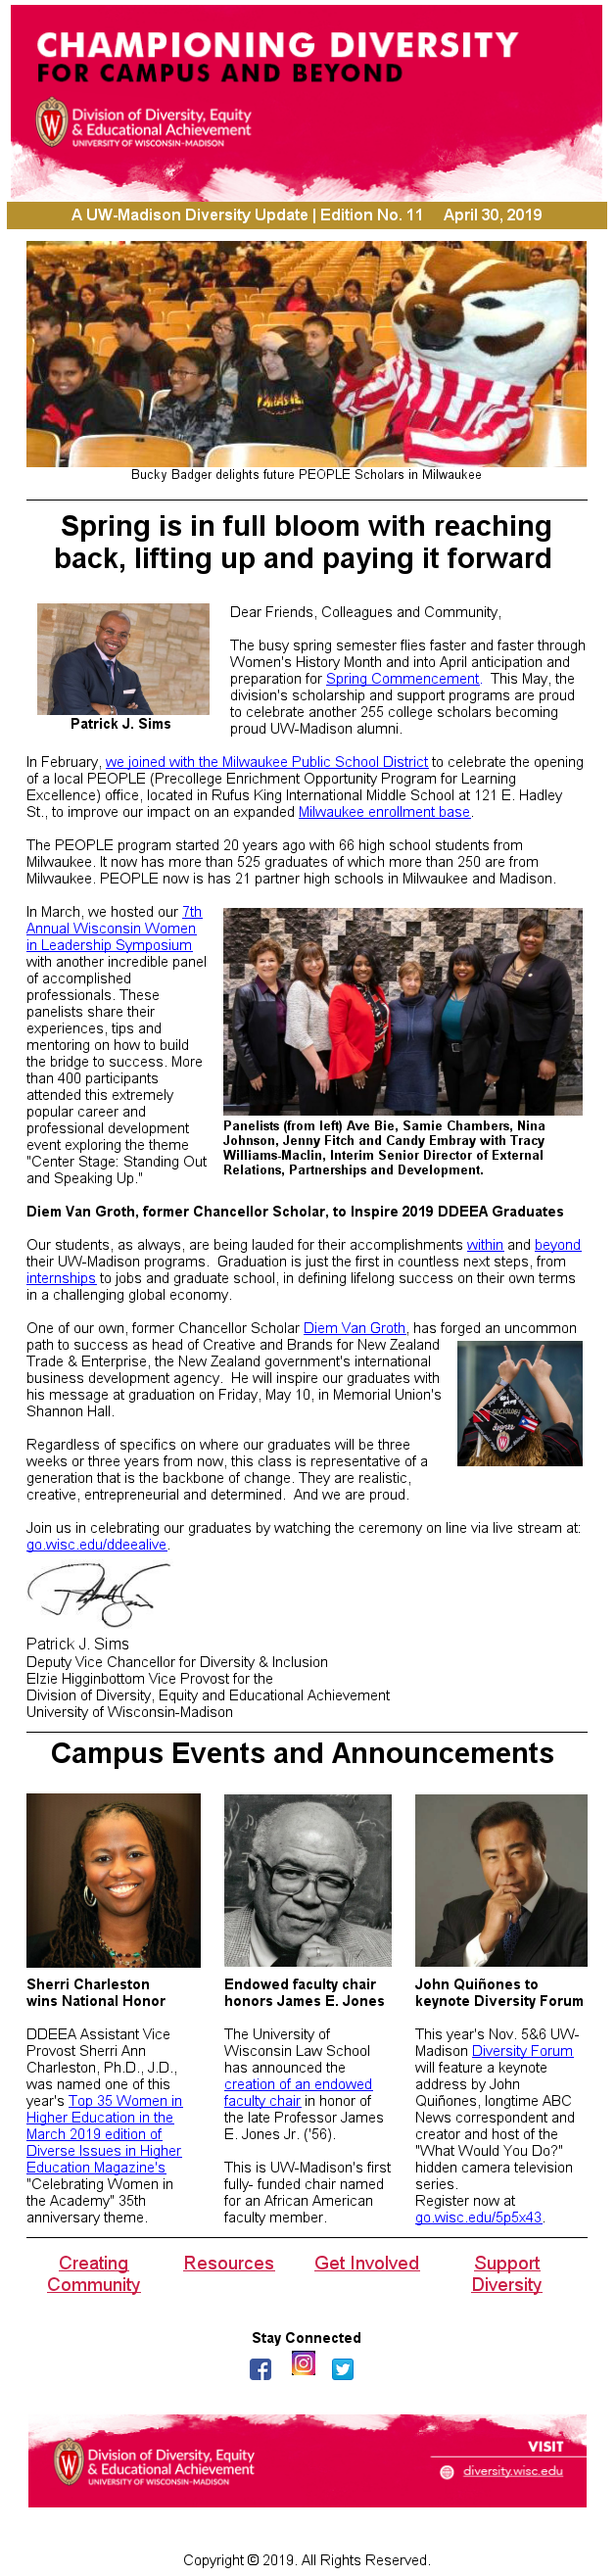 A screenshot of one of the DDEEA email newsletters.